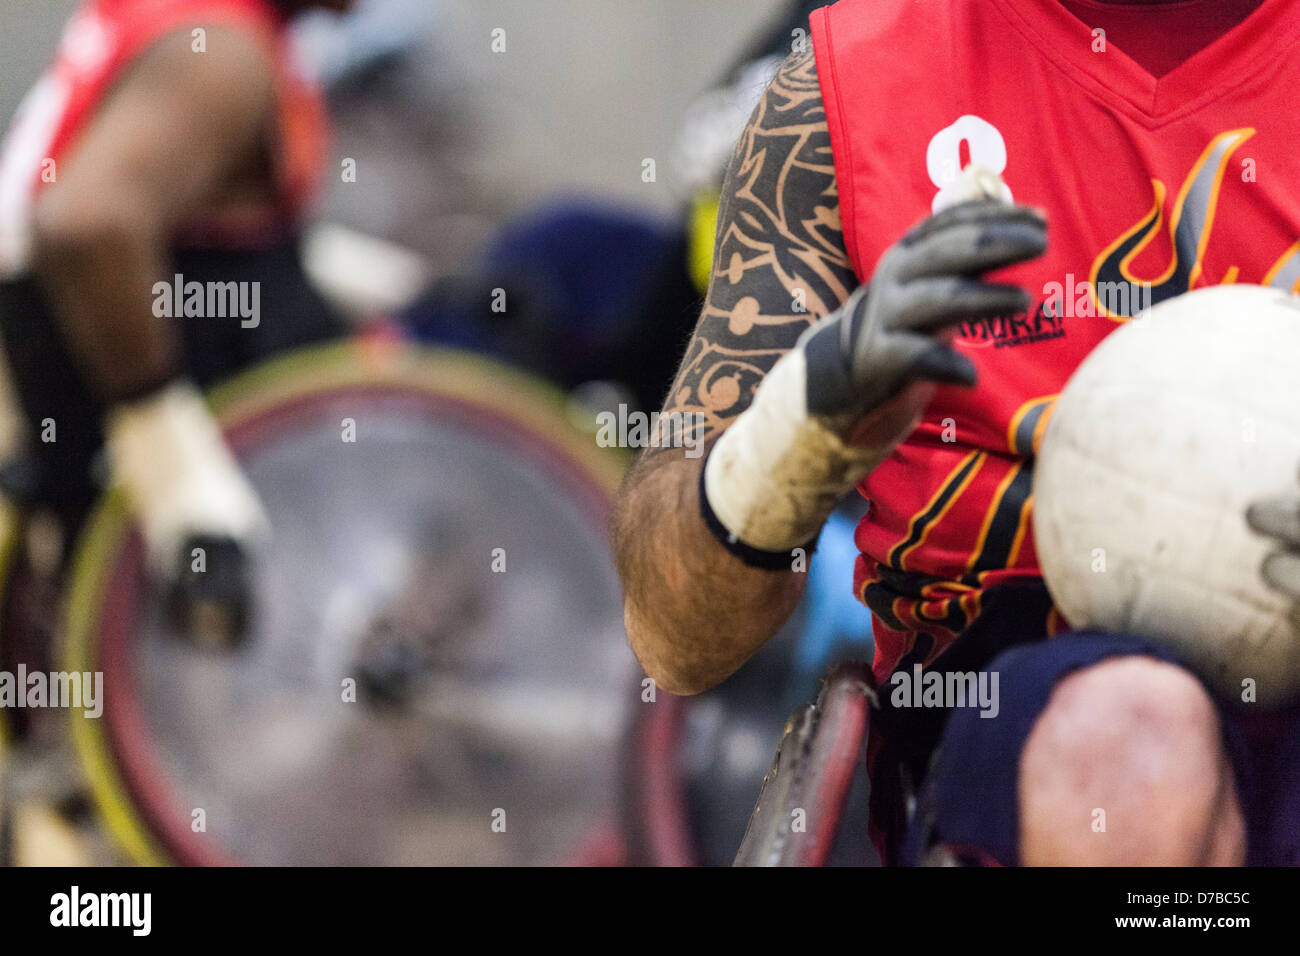 wheelchair rugby player holding the ball, gbwr, team gb, gbr, - Stock Image